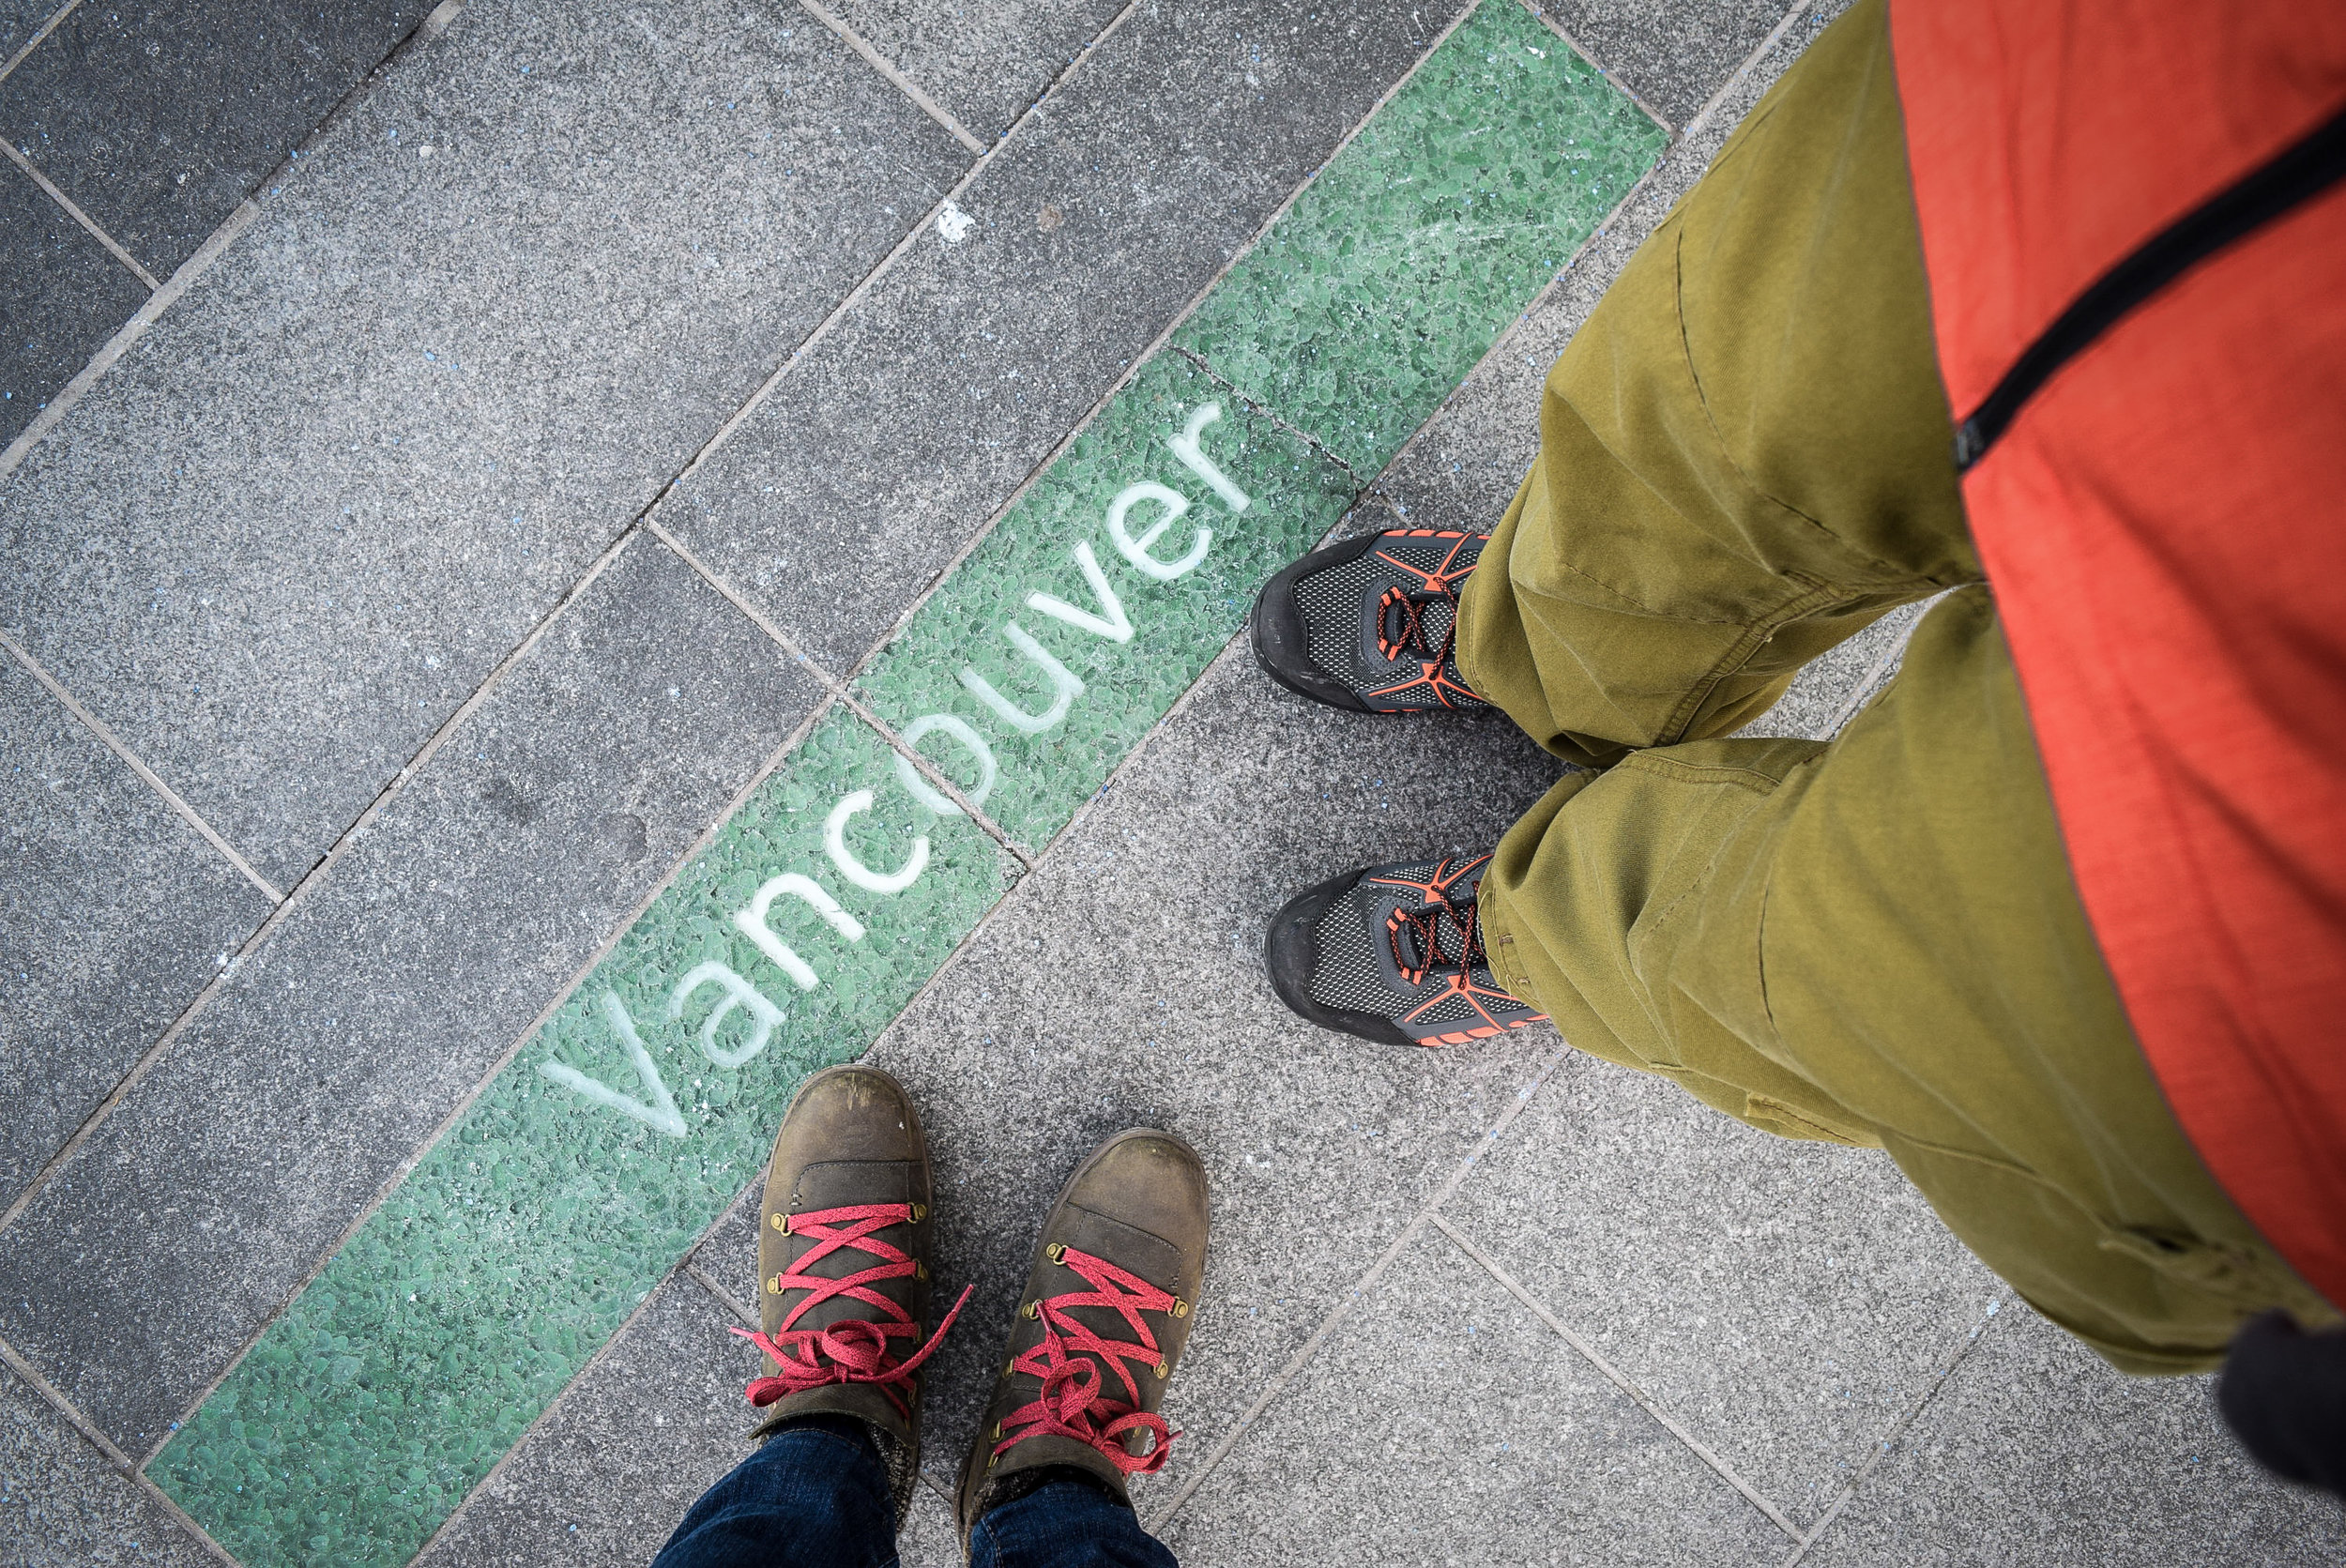 Where to Go in Vancouver: 6 Can't Miss Spots